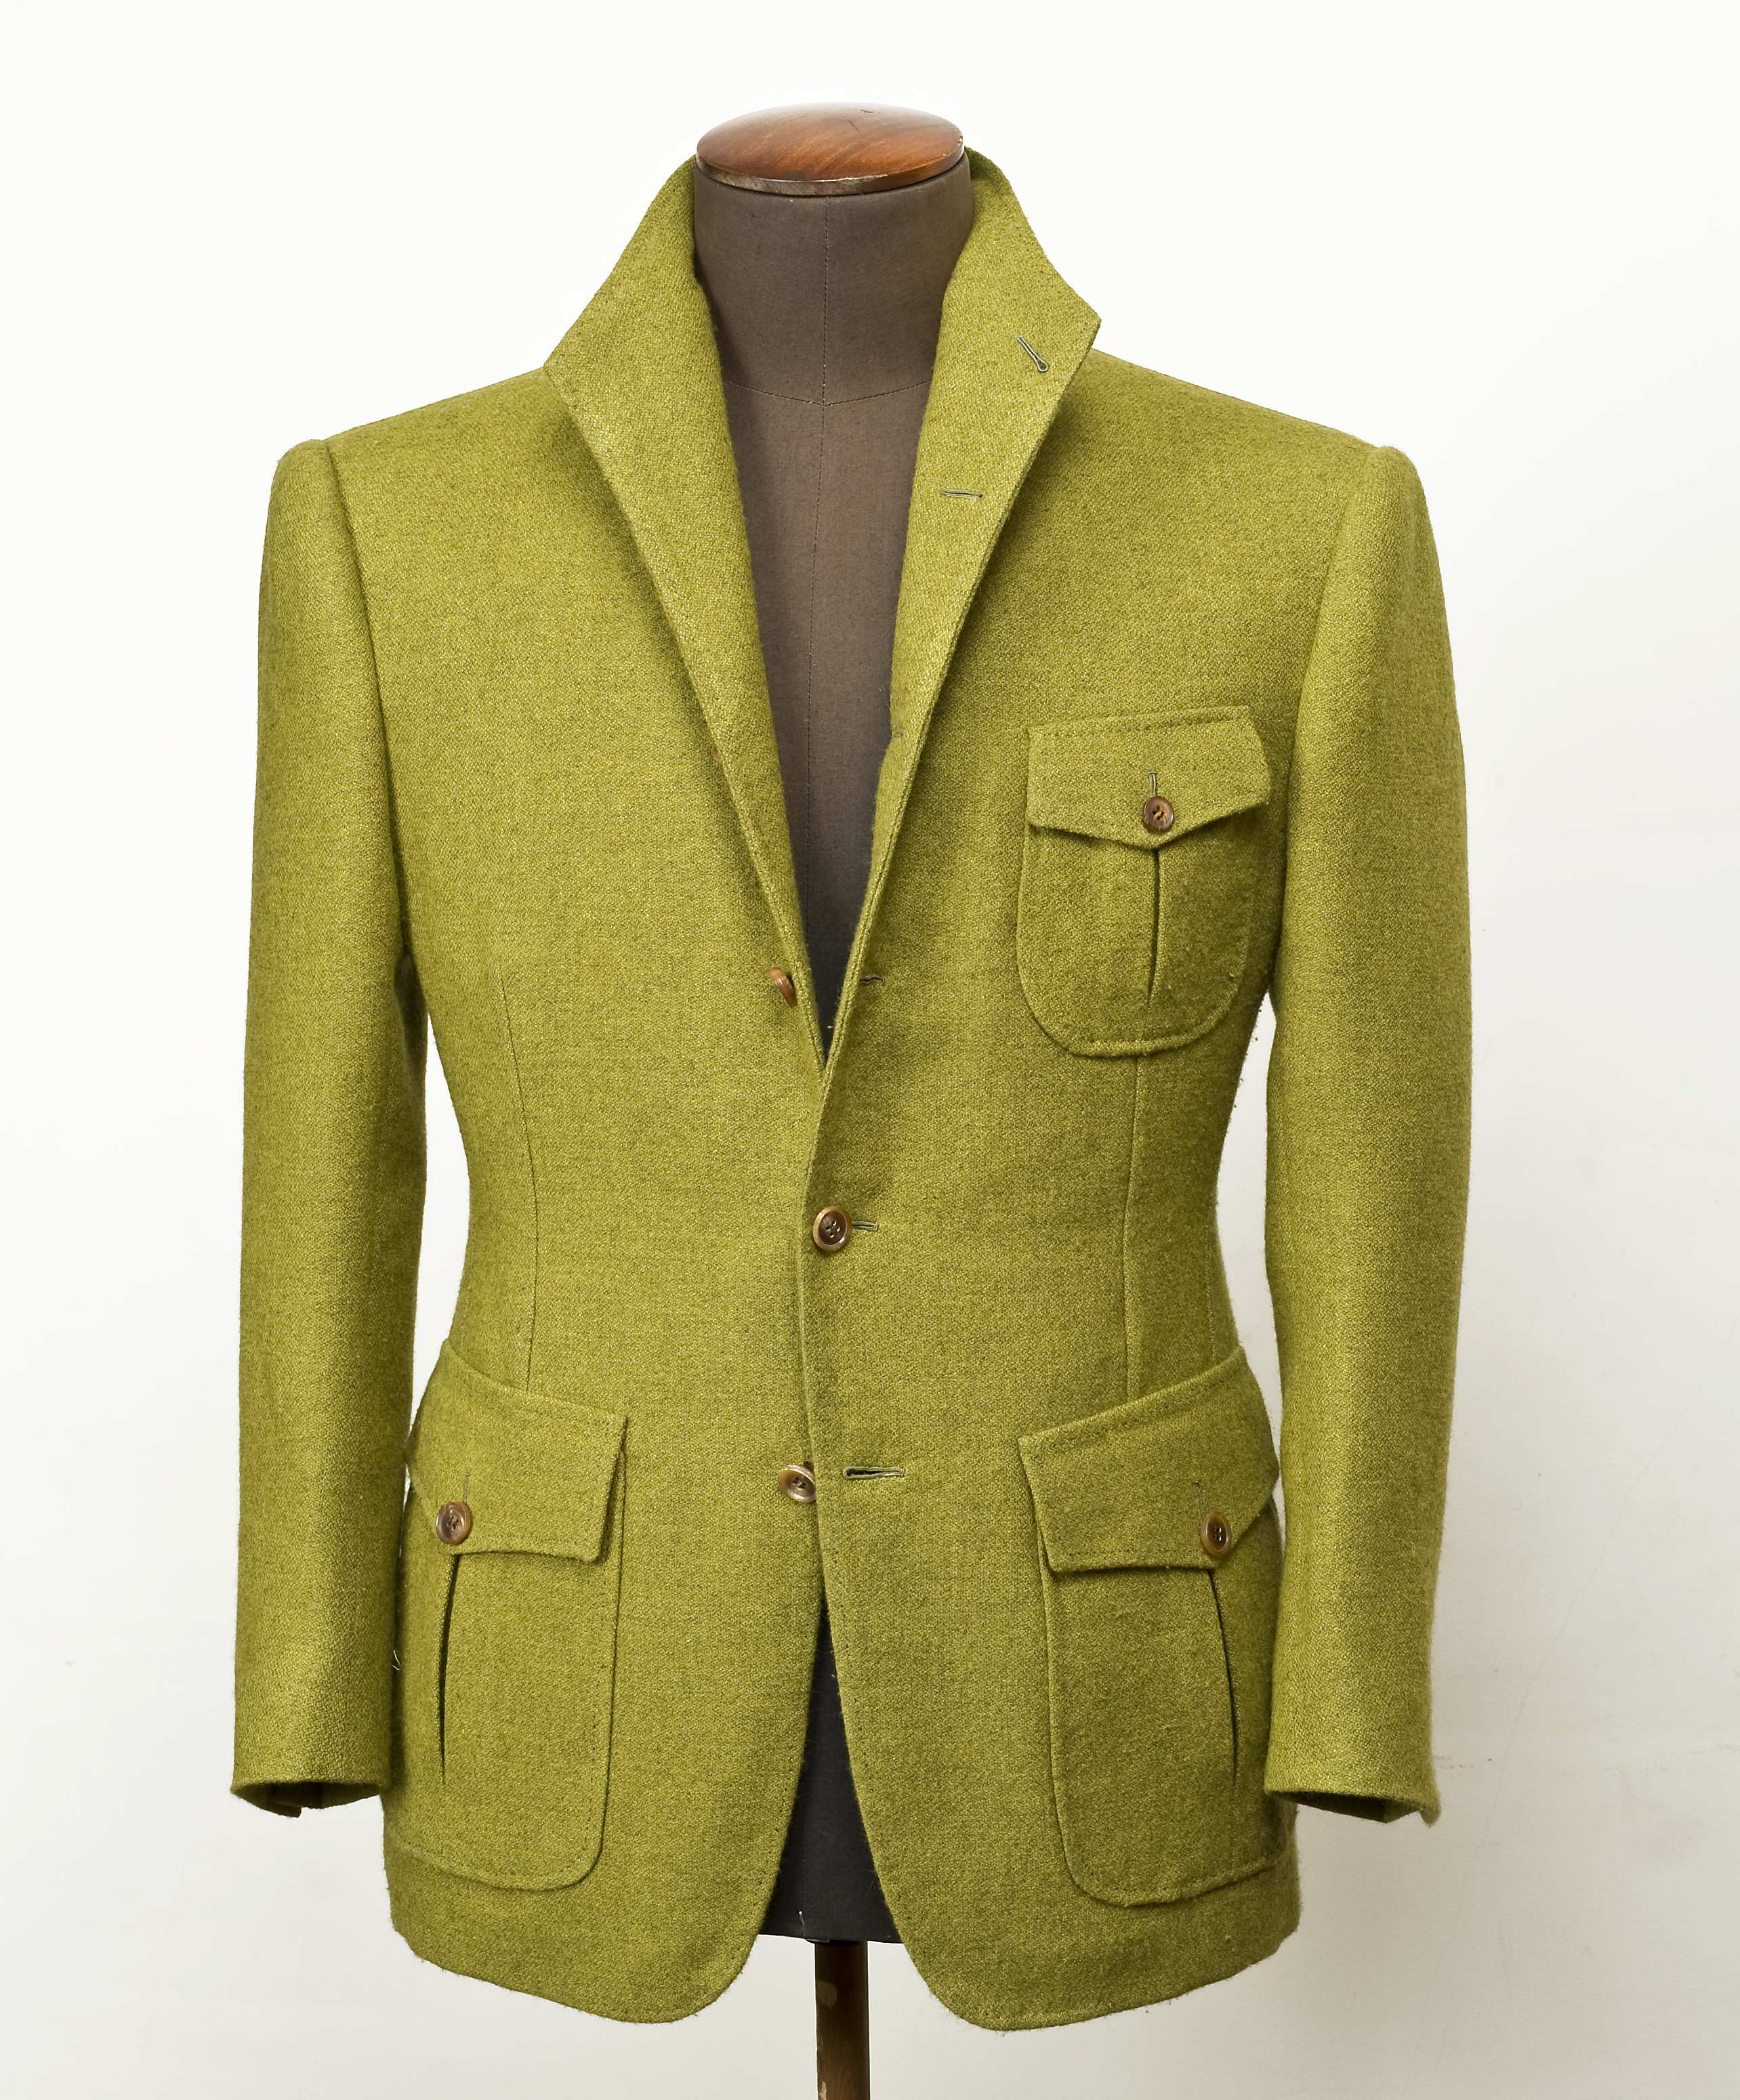 The QILIAN sport  jacket by Cifonelli: A piece from far away